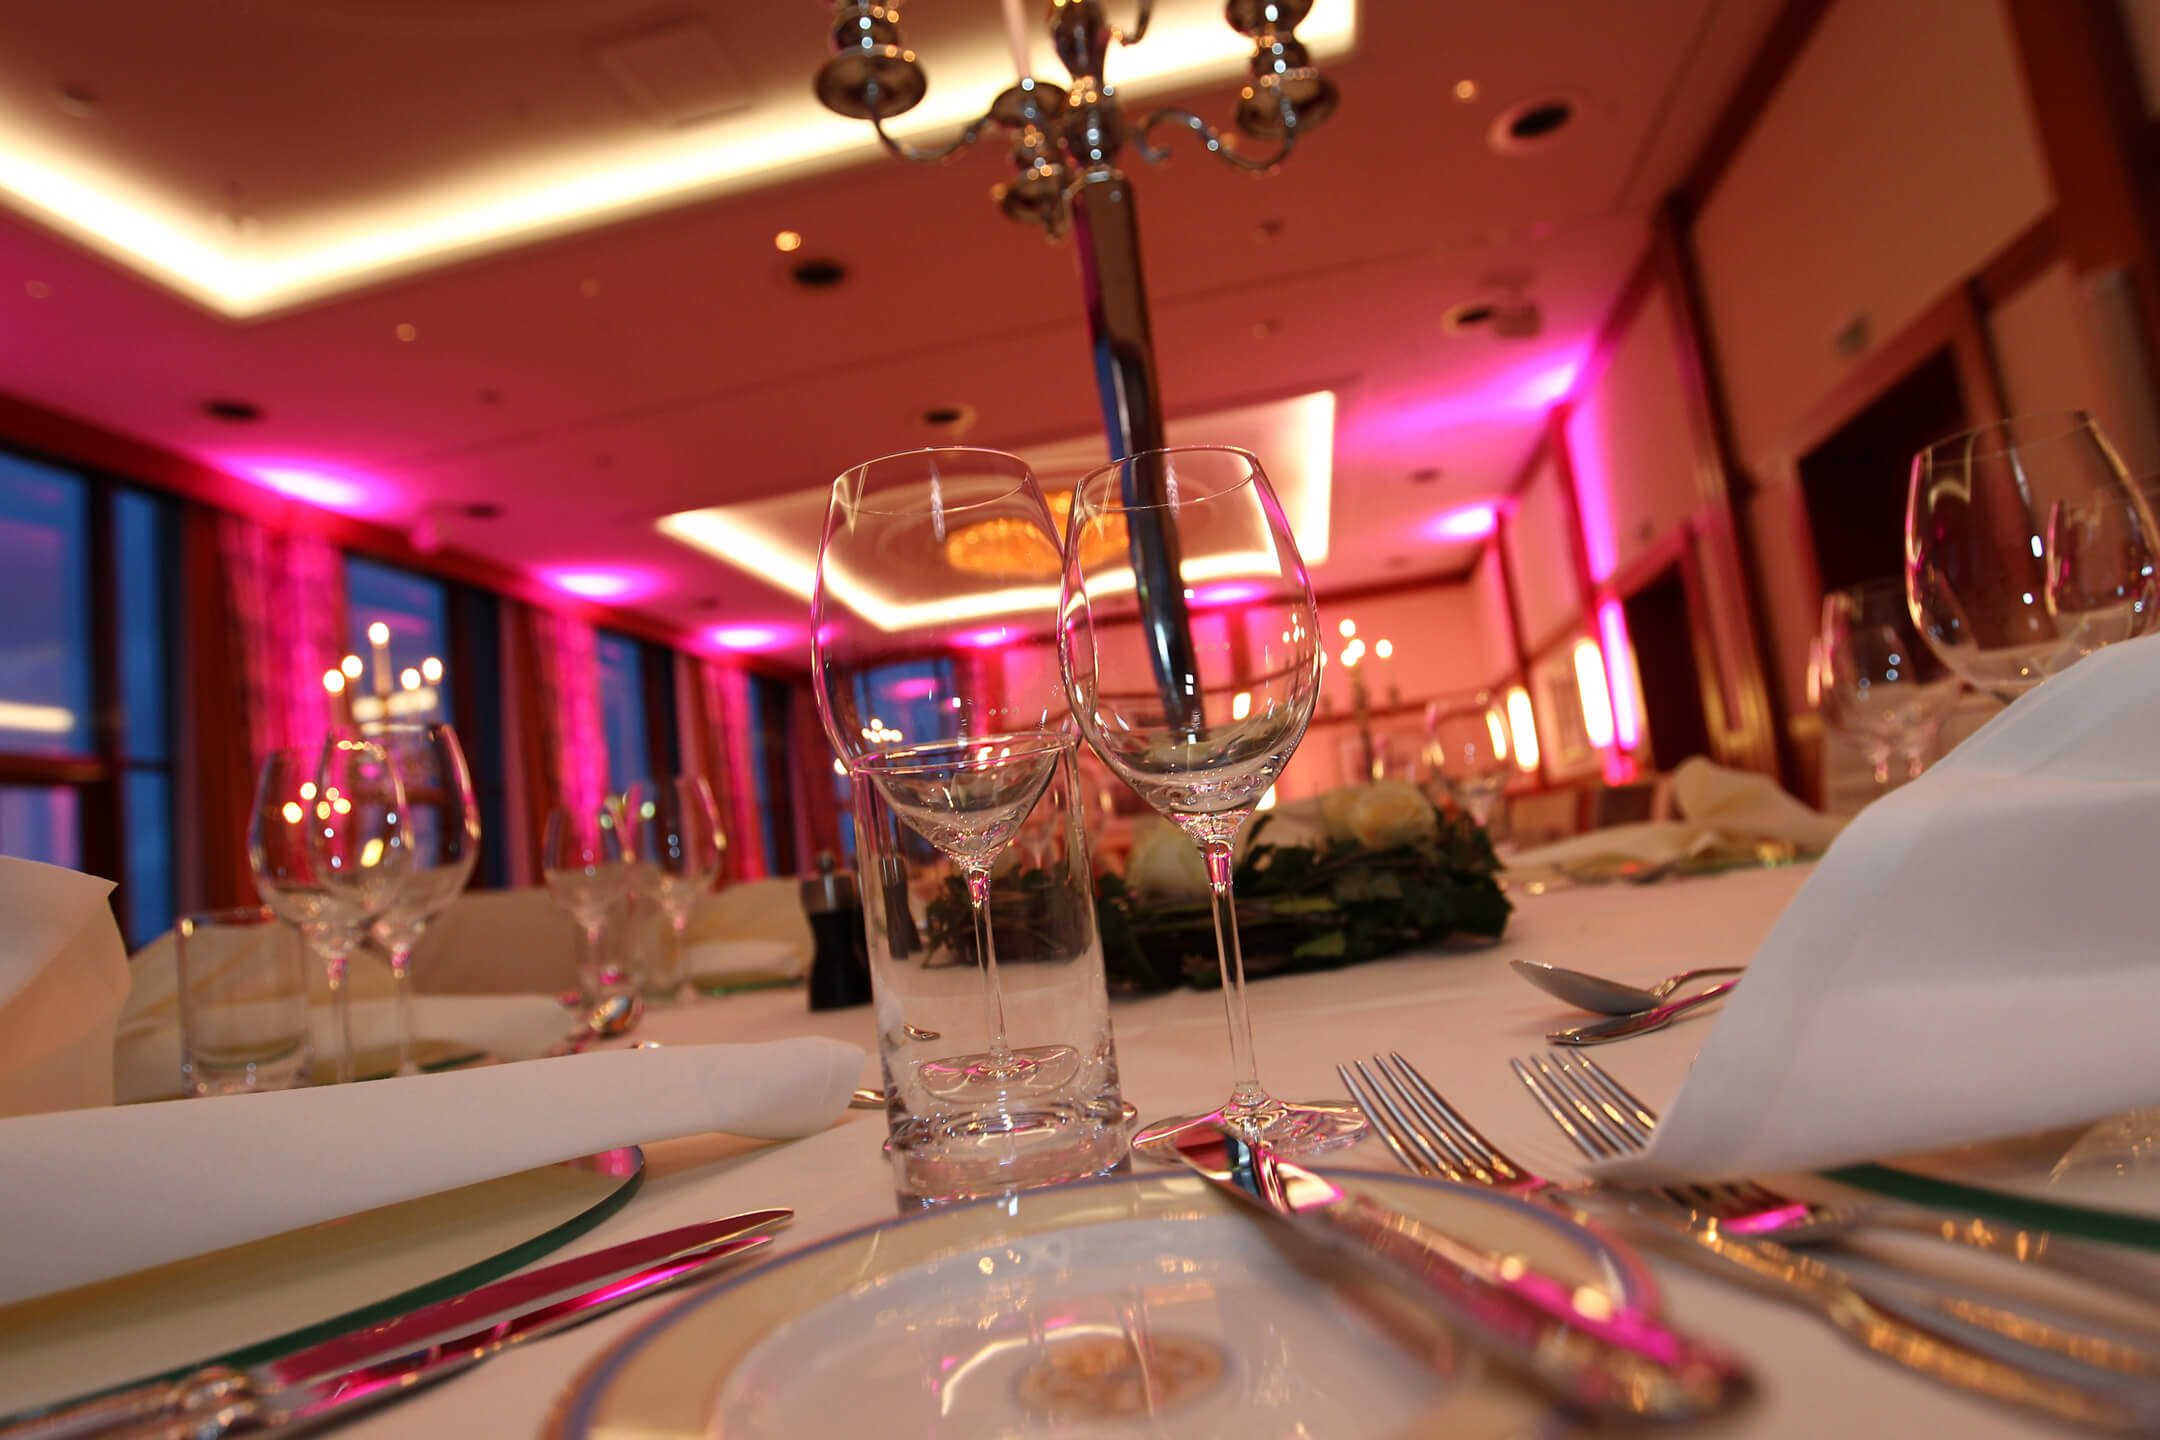 Celebration in the banquet hall │ ATLANTIC Hotel Wilhelmshaven